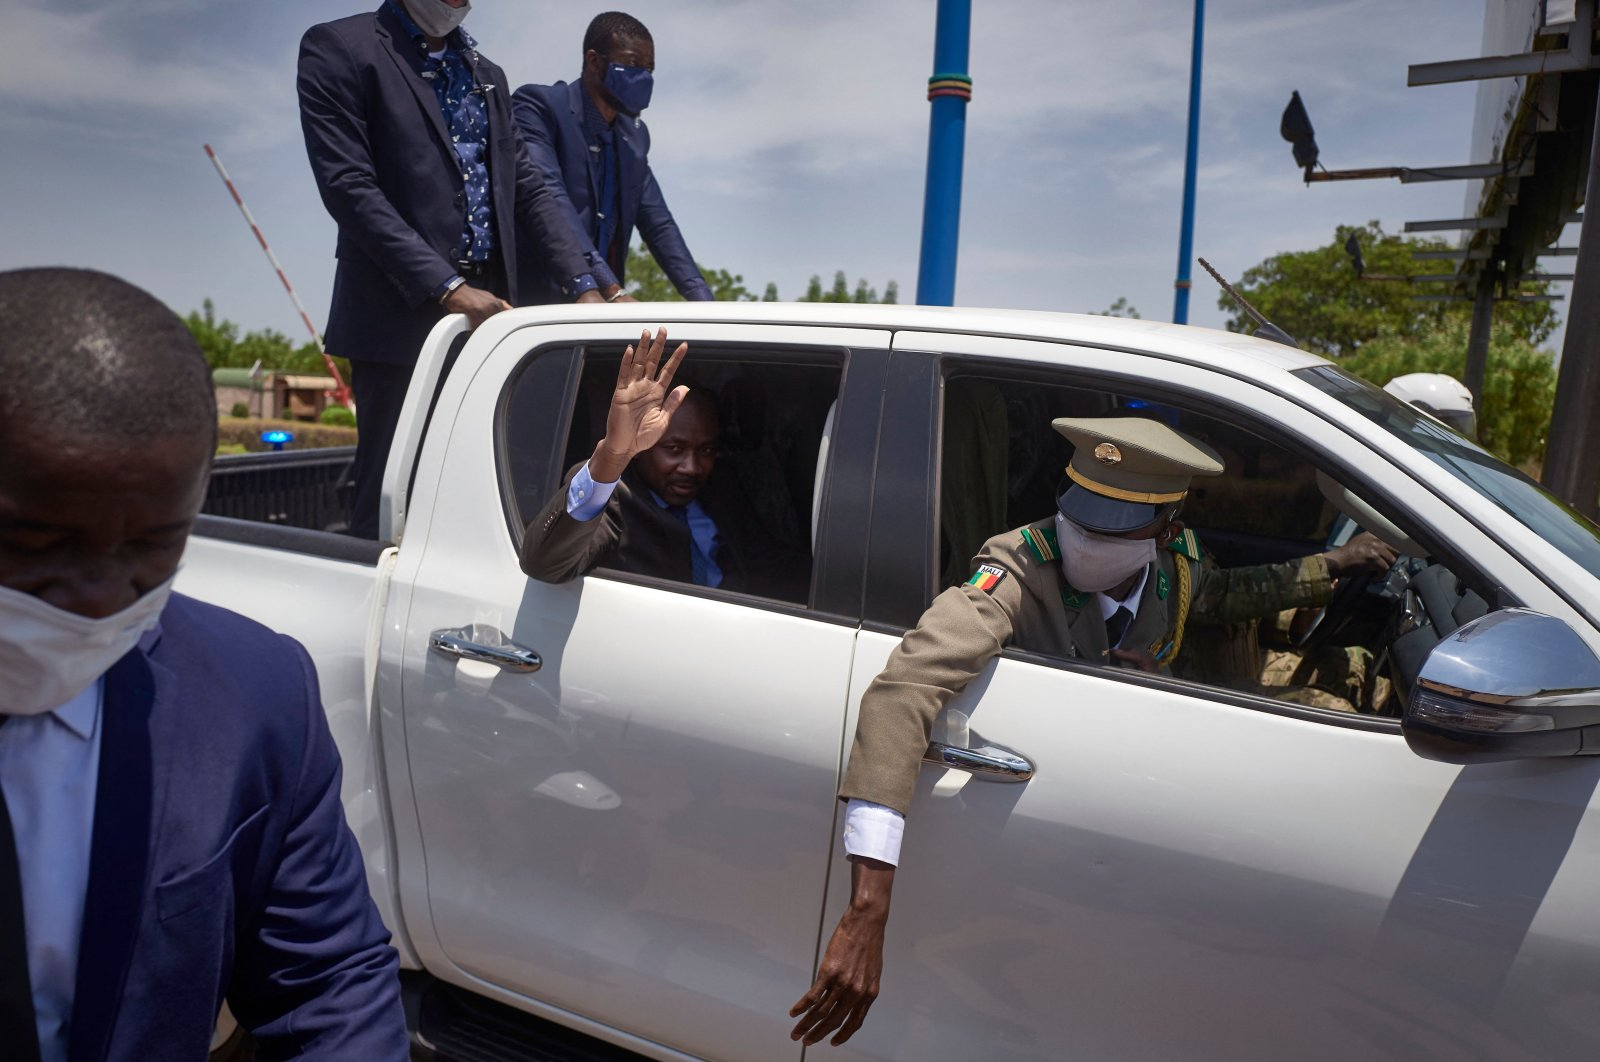 The president of Mali's transitional government, Col. Assimi Goita, waves from his vehicle as he returns from Accra where he met with Economic Community of West African States (ECOWAS) representatives, in Mali, May 31, 2021. (AFP Photo)